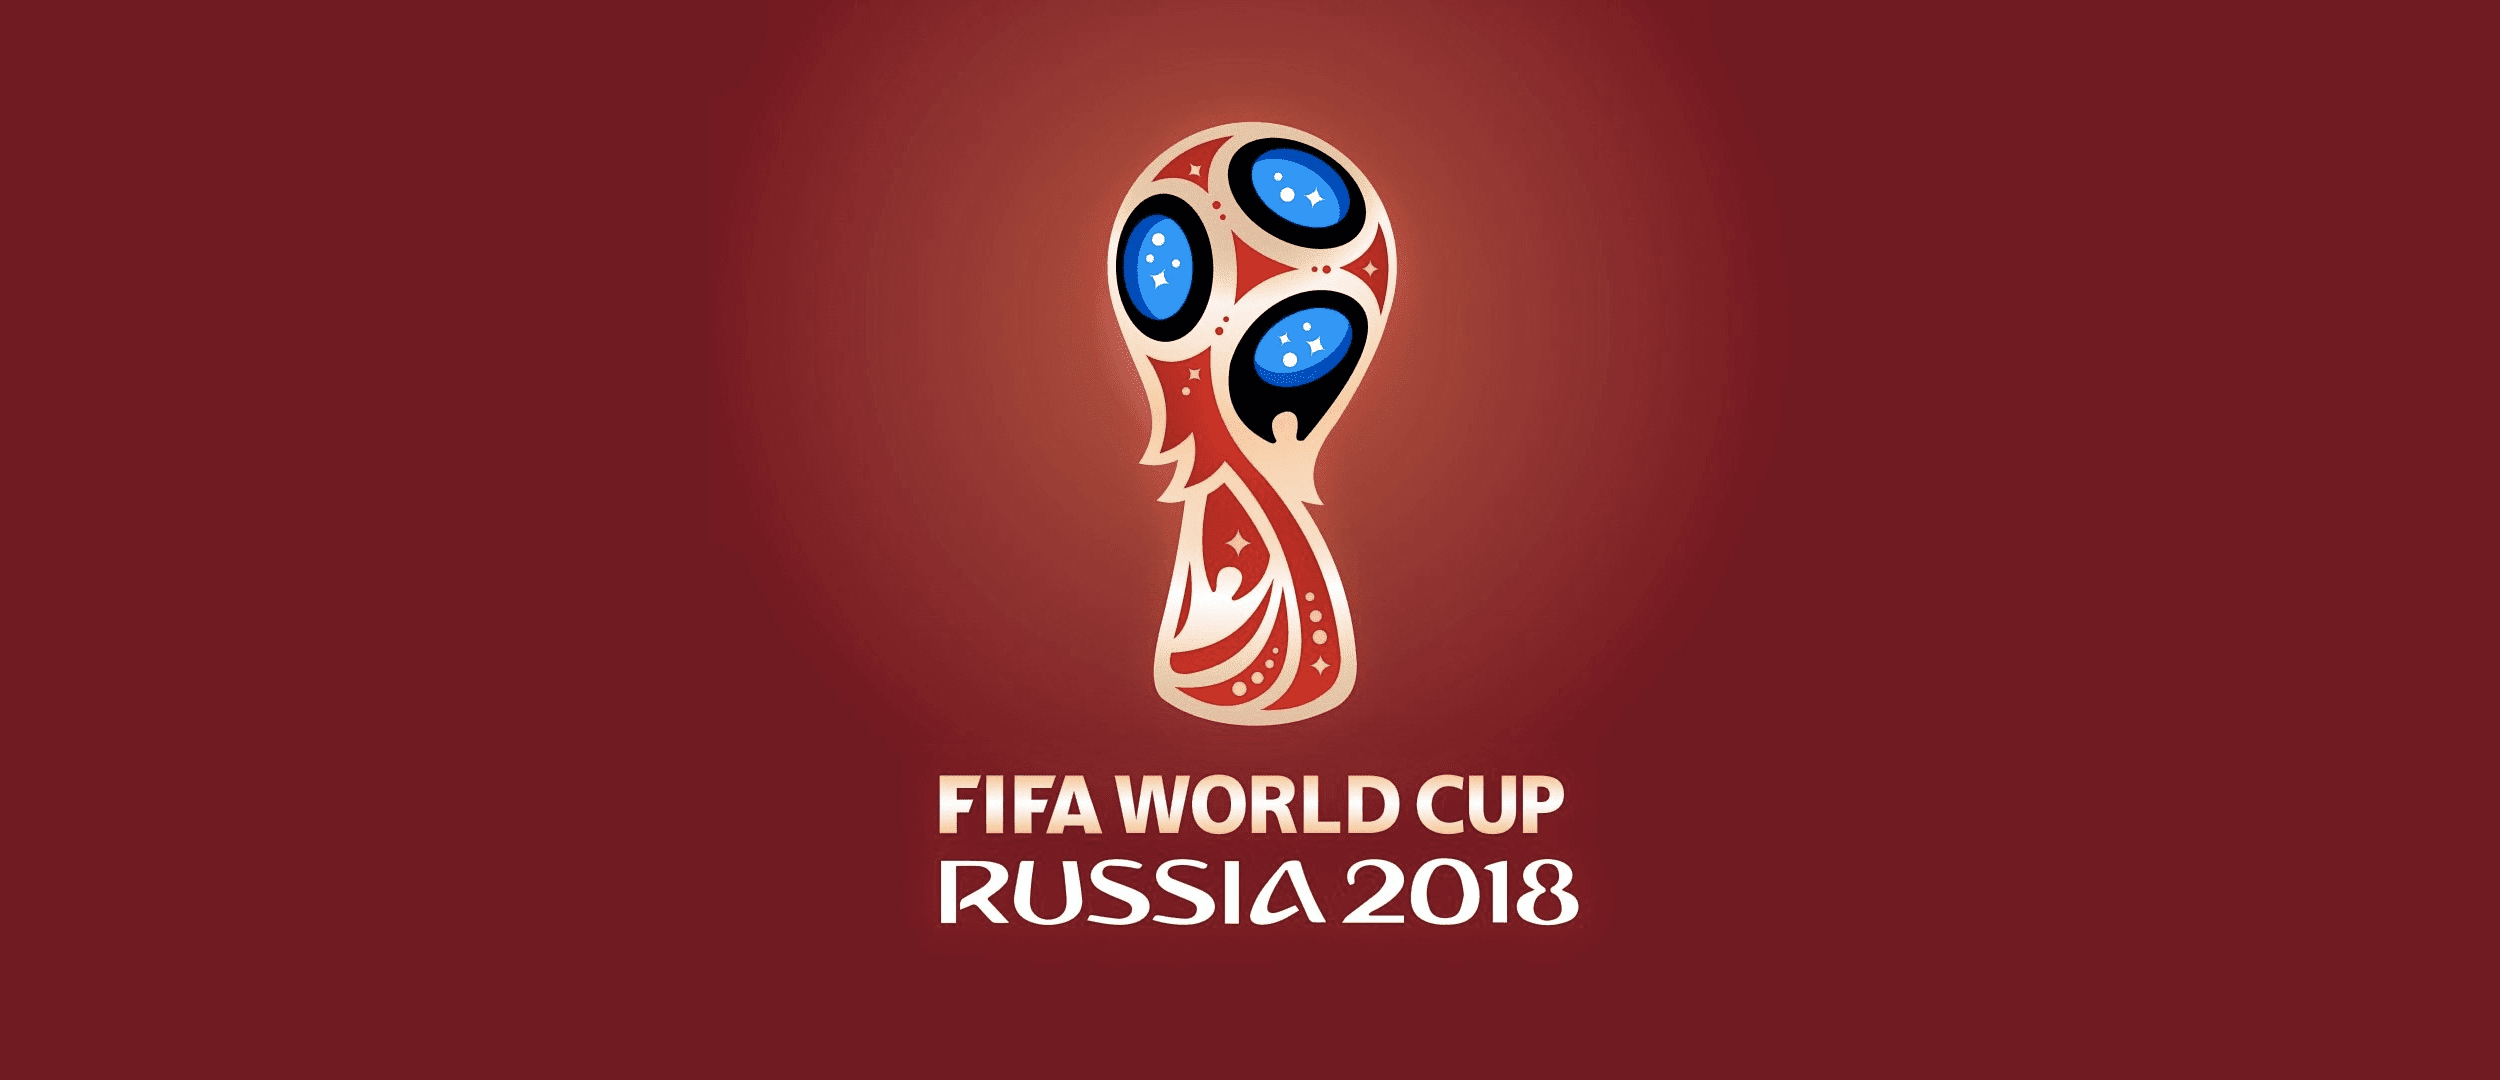 Your Preparation For The FIFA World Cup 2018